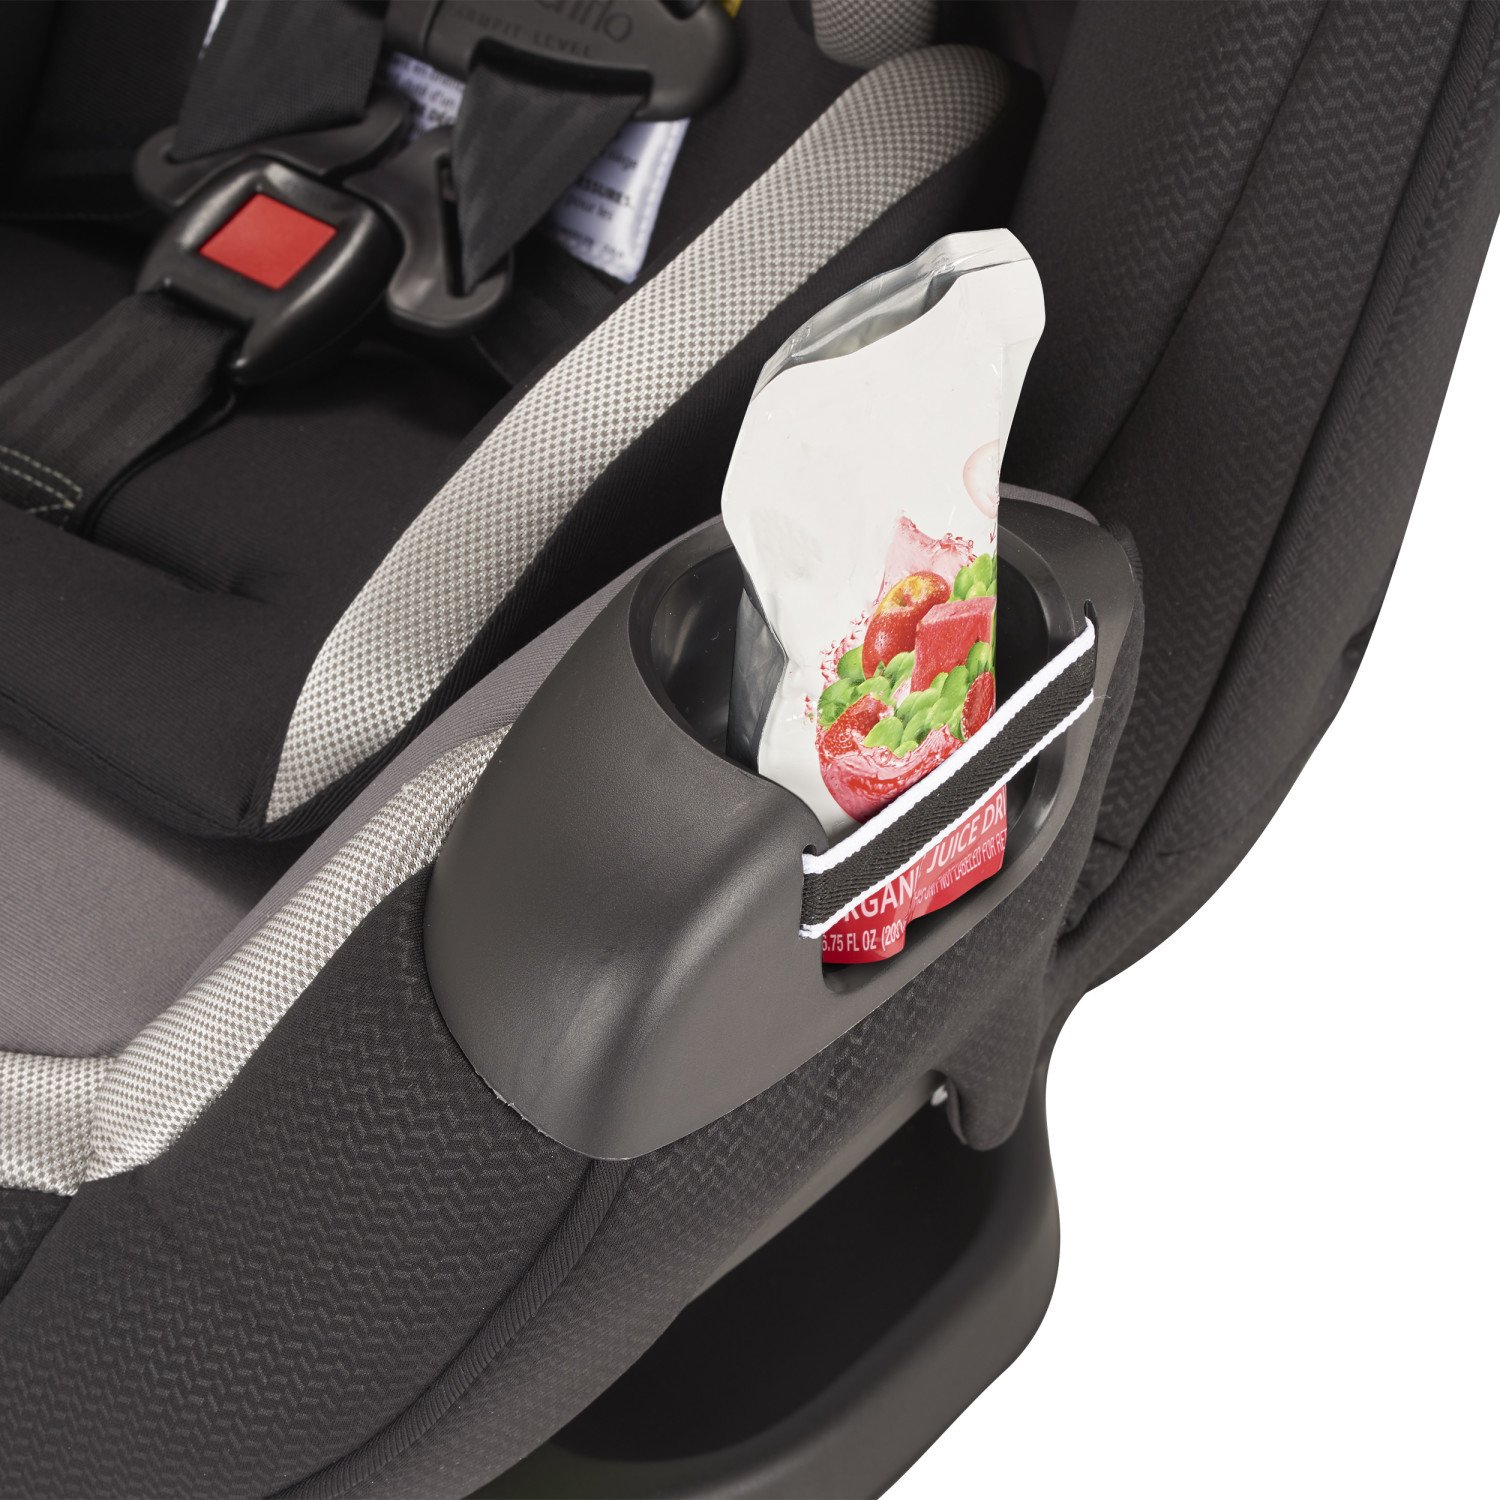 Evenflo Symphony DLX All-In-One Convertible Car Seat Modesto